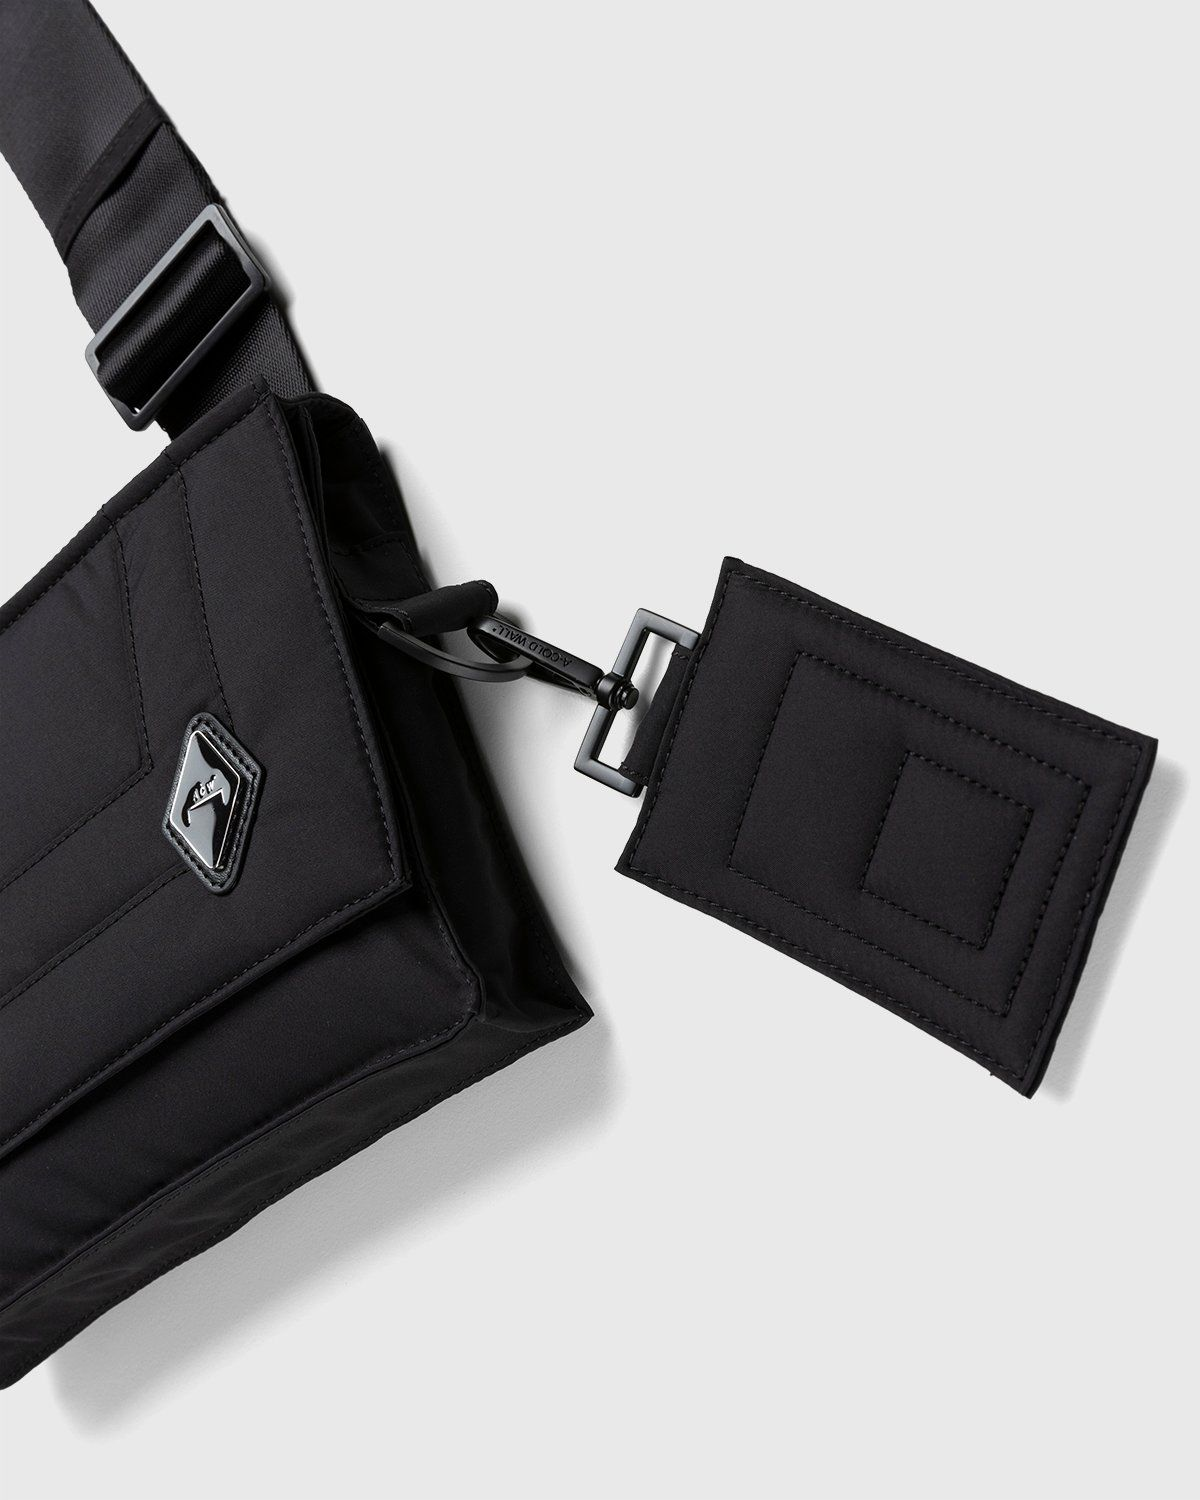 A-COLD-WALL* – Convect Holster Bag Black - Image 4